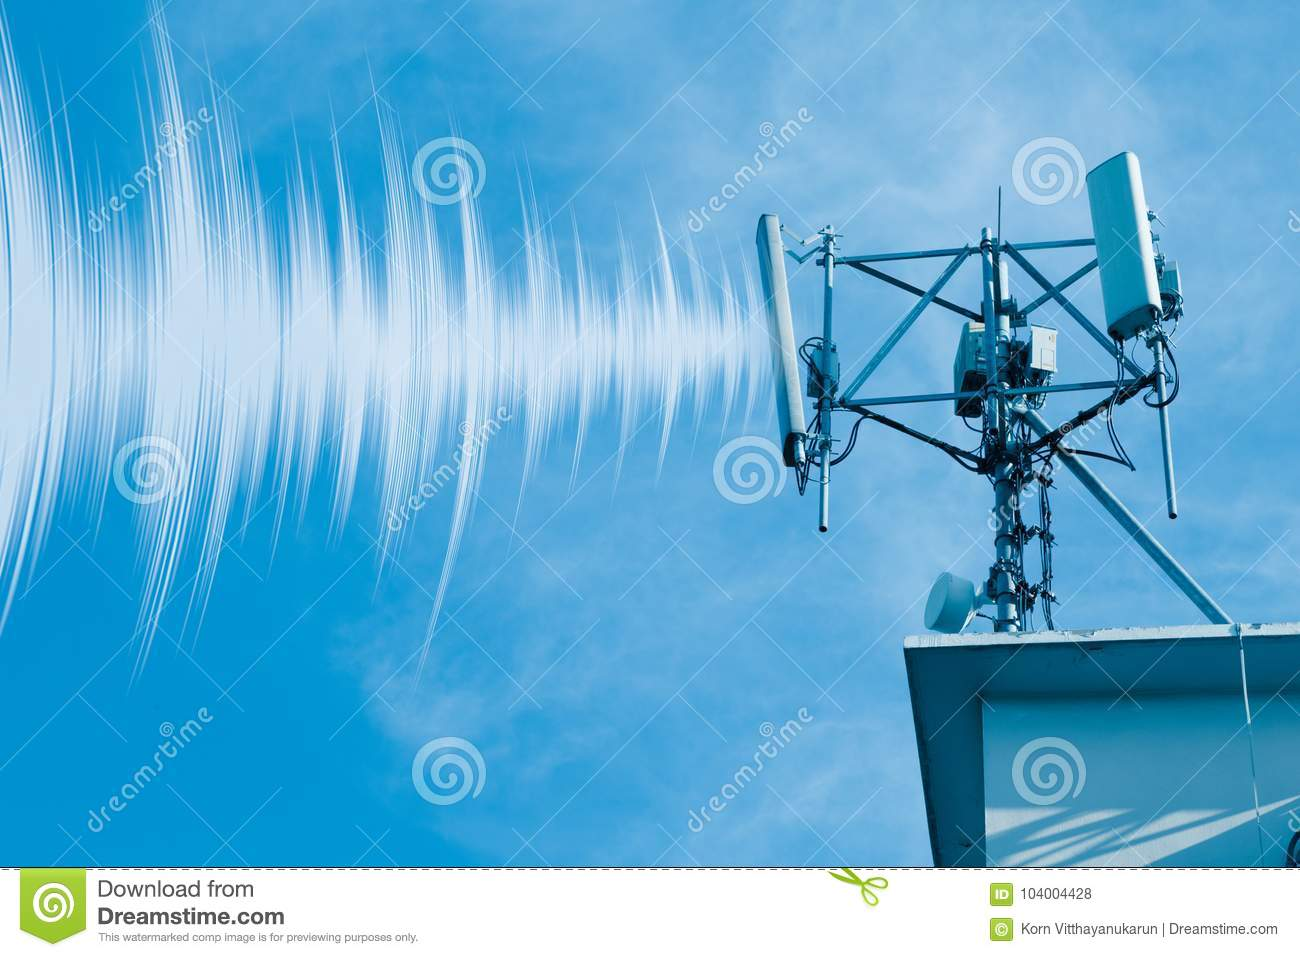 hight resolution of outdoor 4g wireless telephone radio cell site with wave data effect